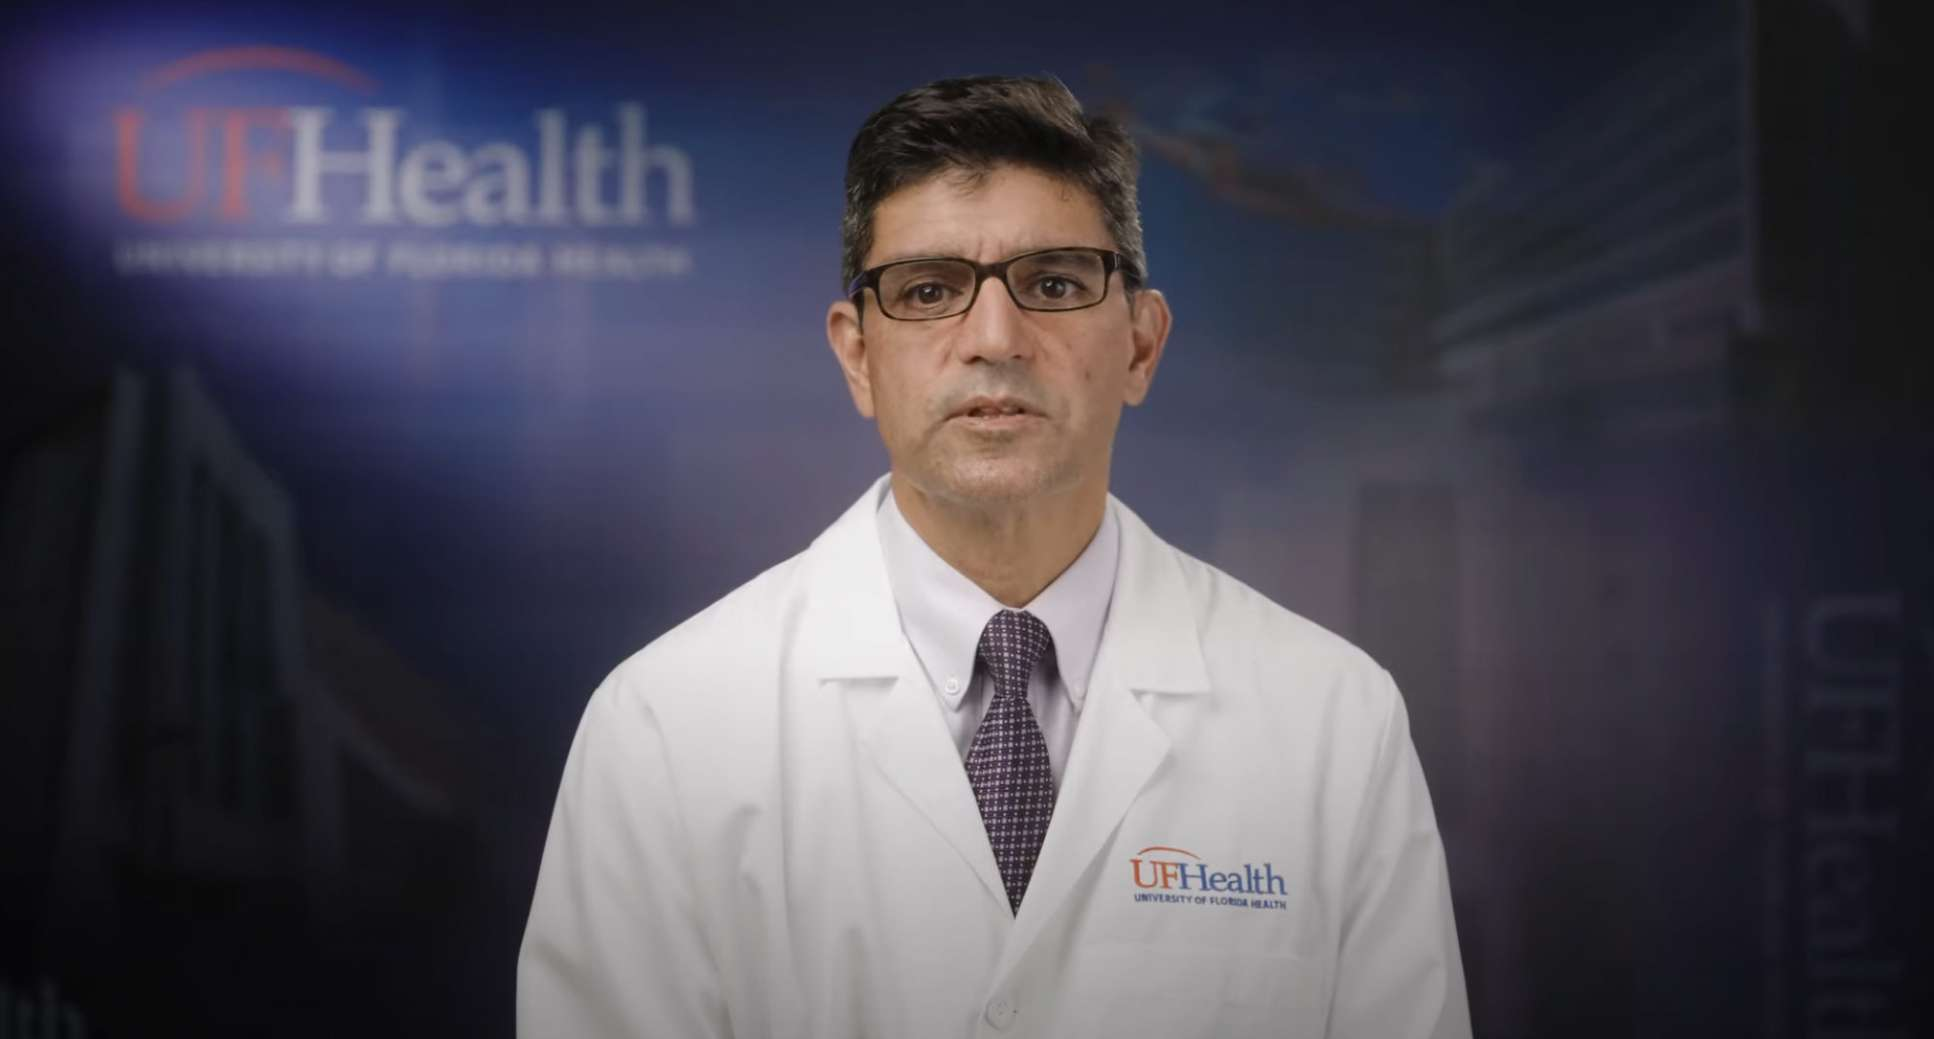 Dr. Michael Lauzardo Answers Questions About Vaccine Safety and Effectiveness